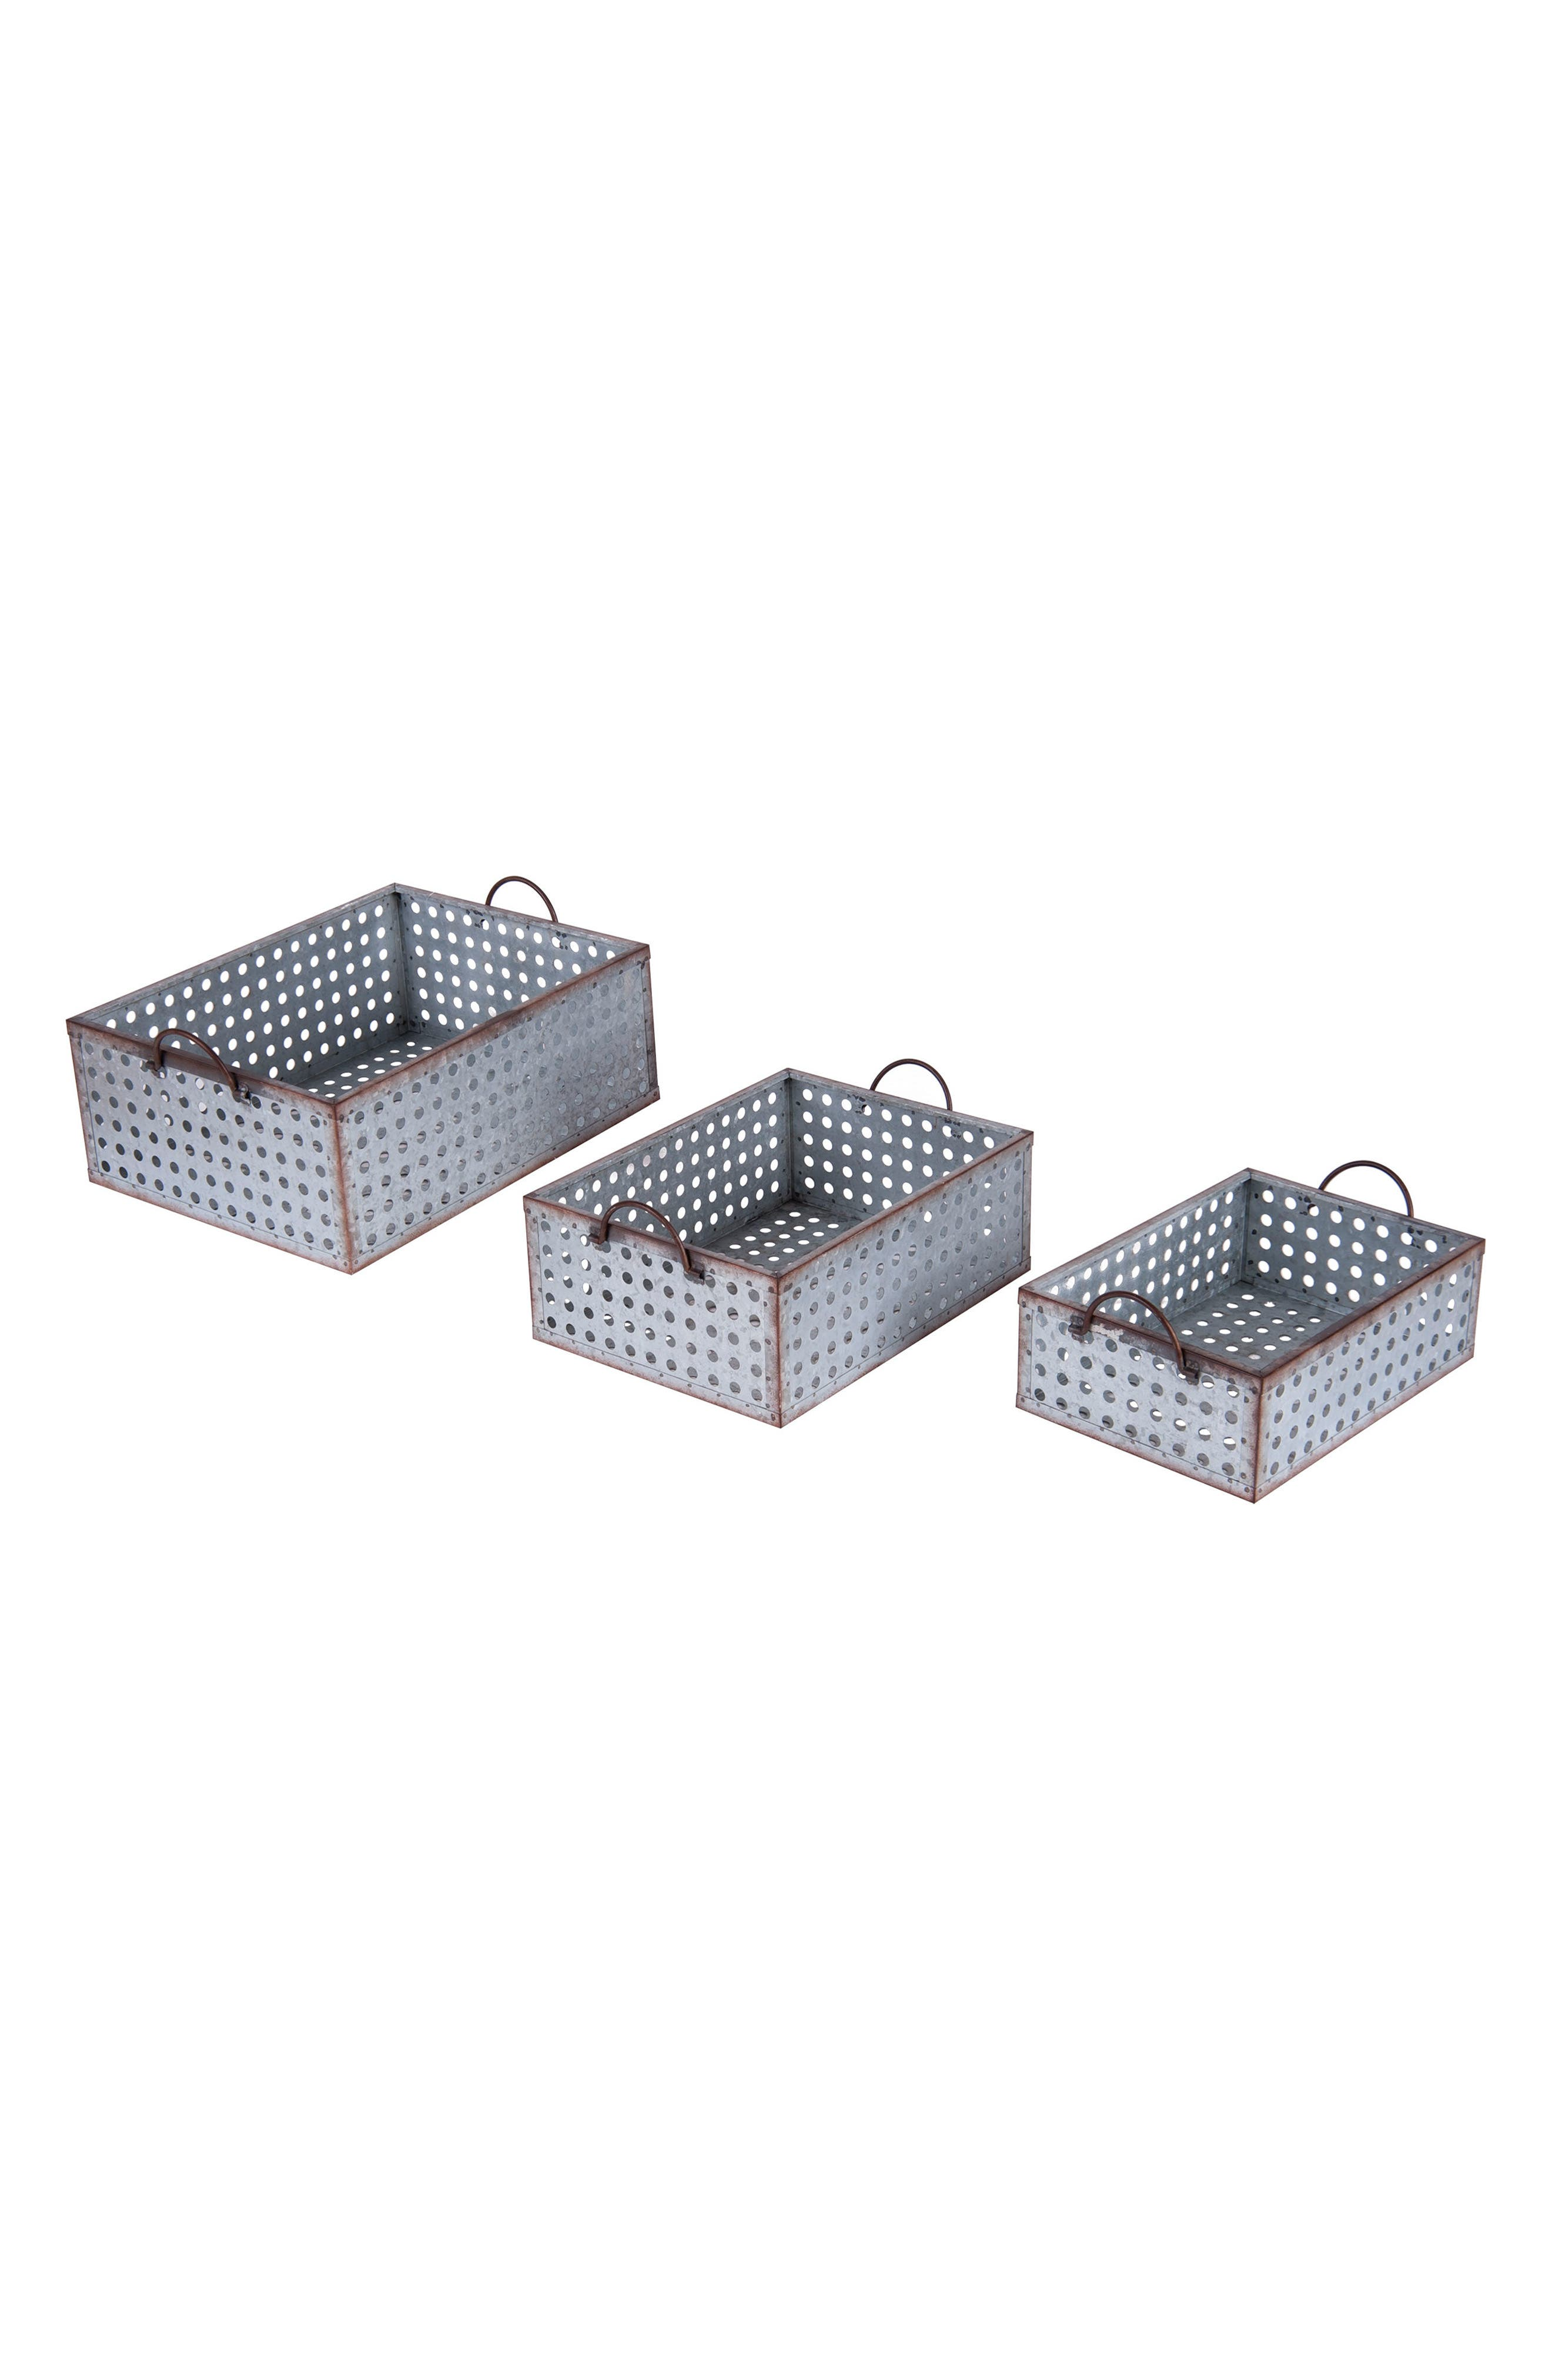 Set of 3 Perforated Baskets,                         Main,                         color, Metal